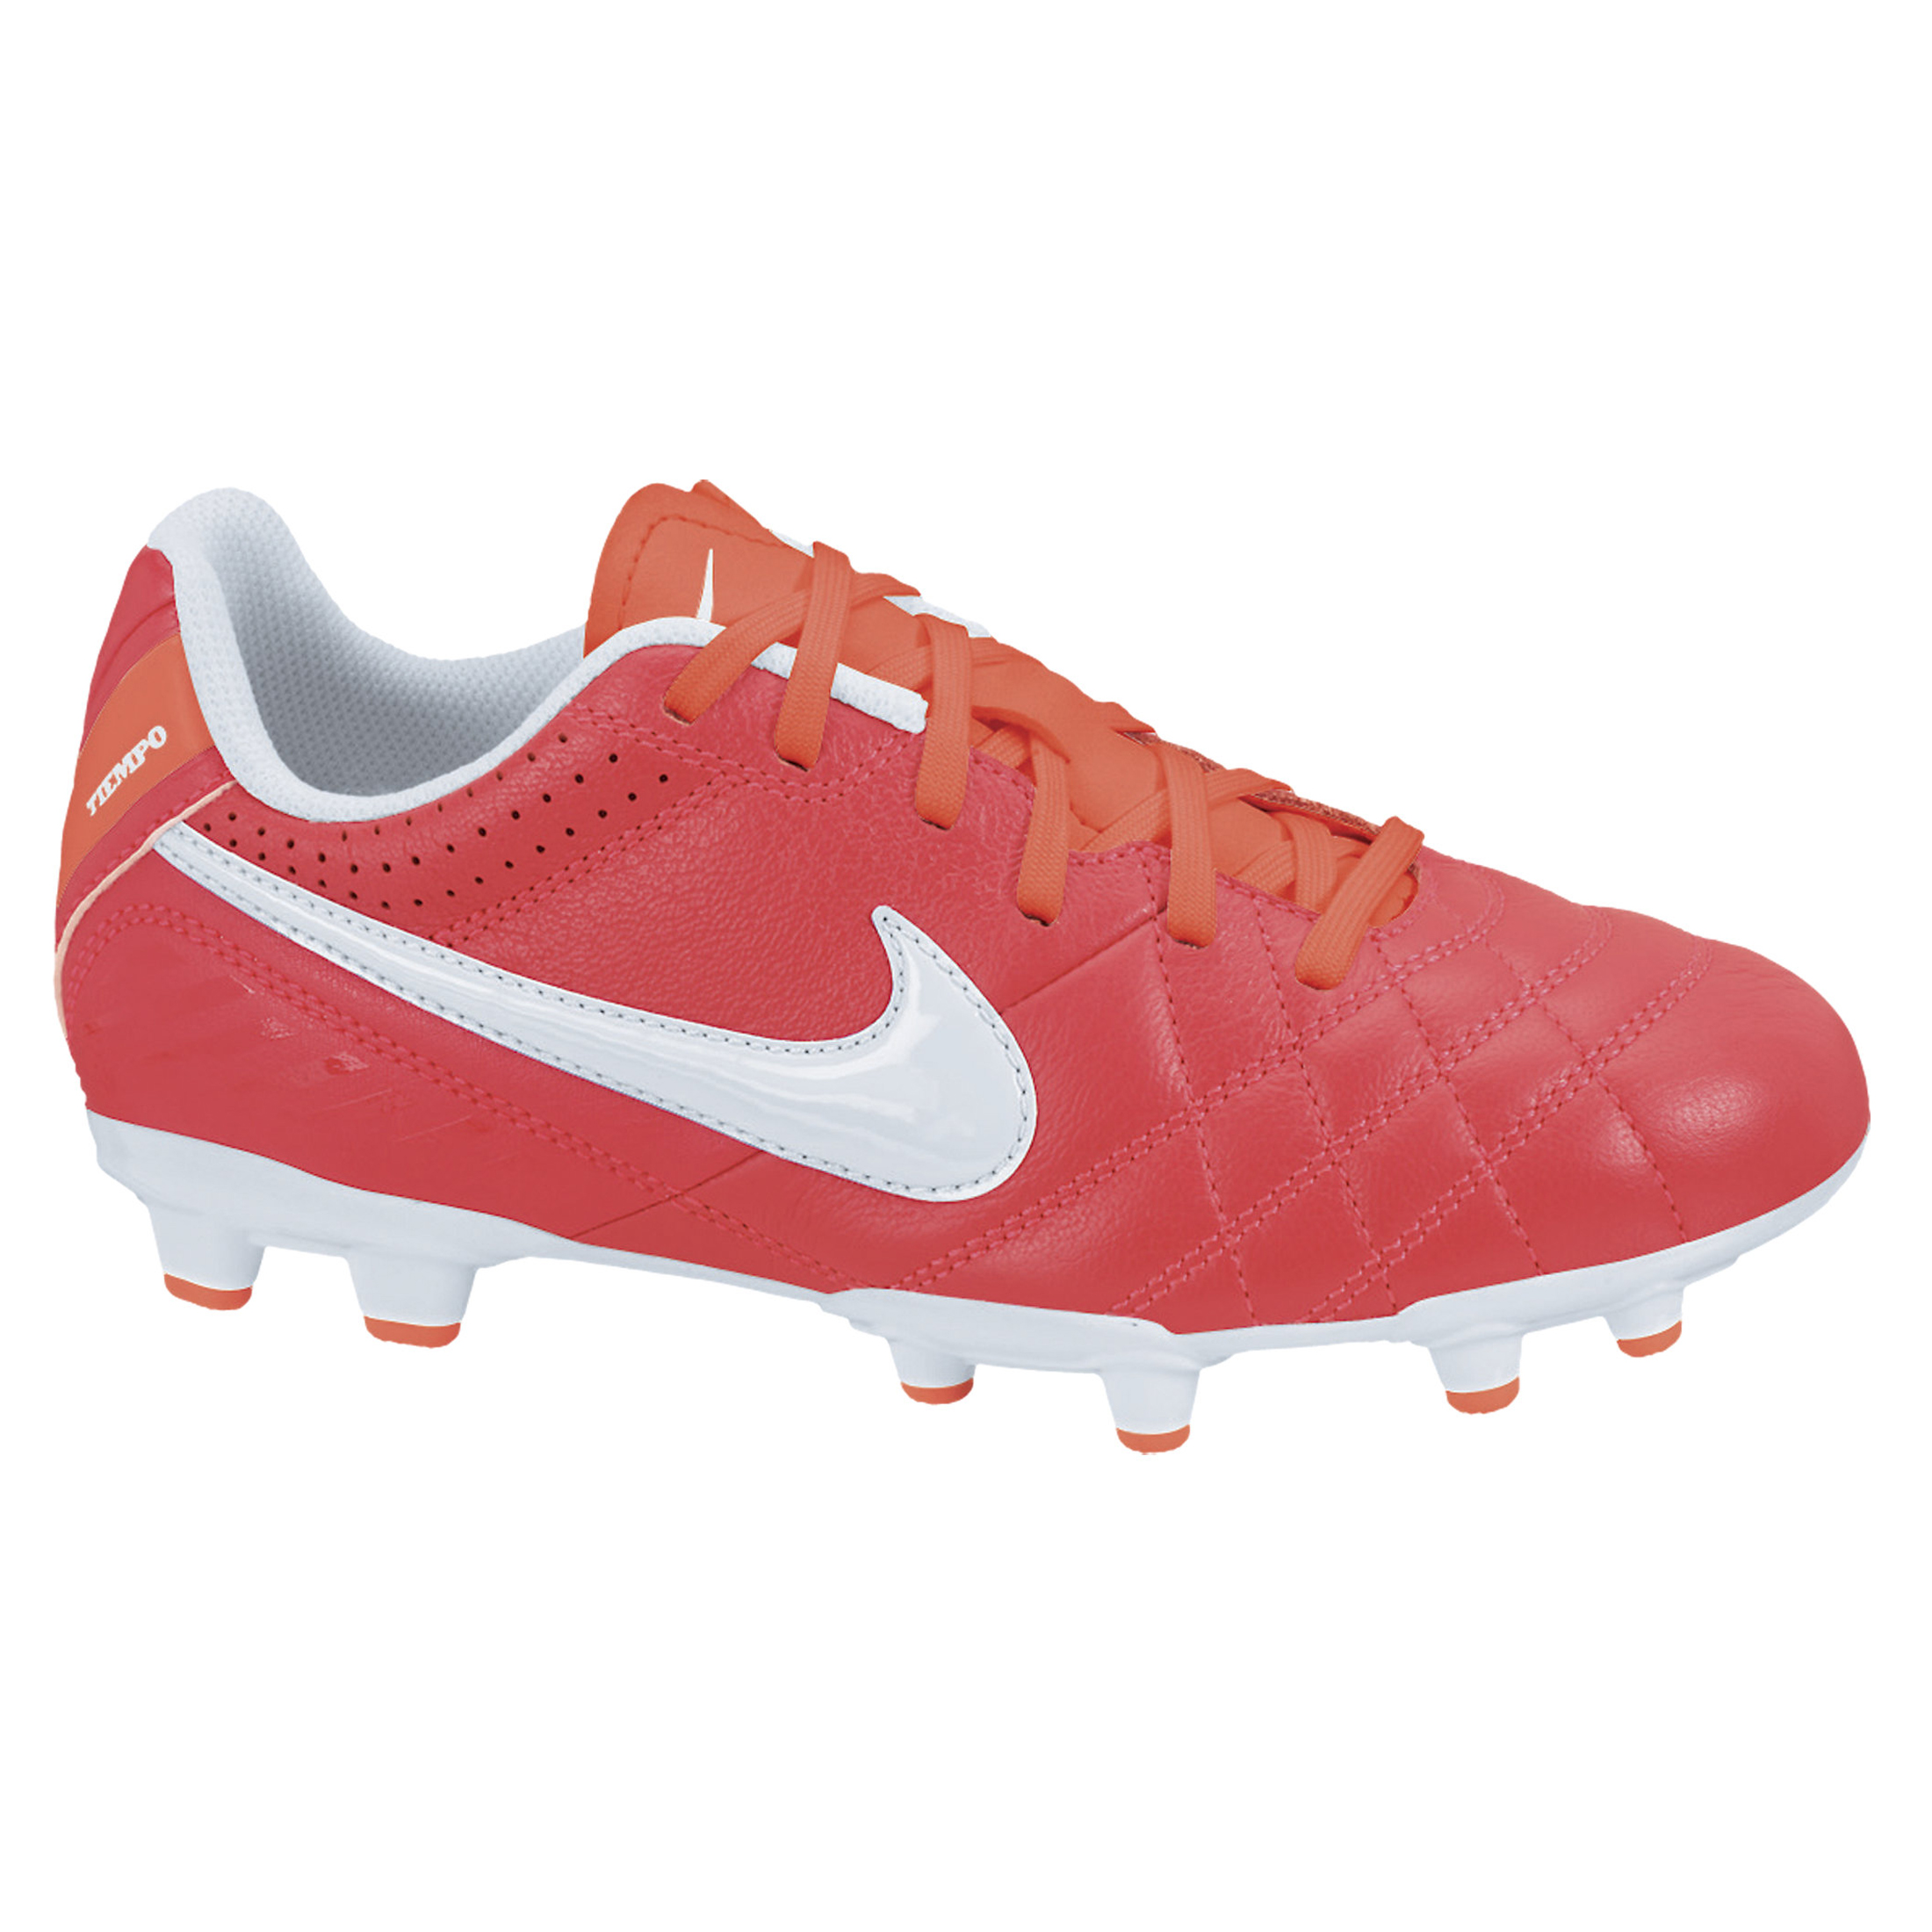 Nike Tiempo Natural IV LTR Firm Ground Football Boots - Sunburst/White/Total Crimson - Kids